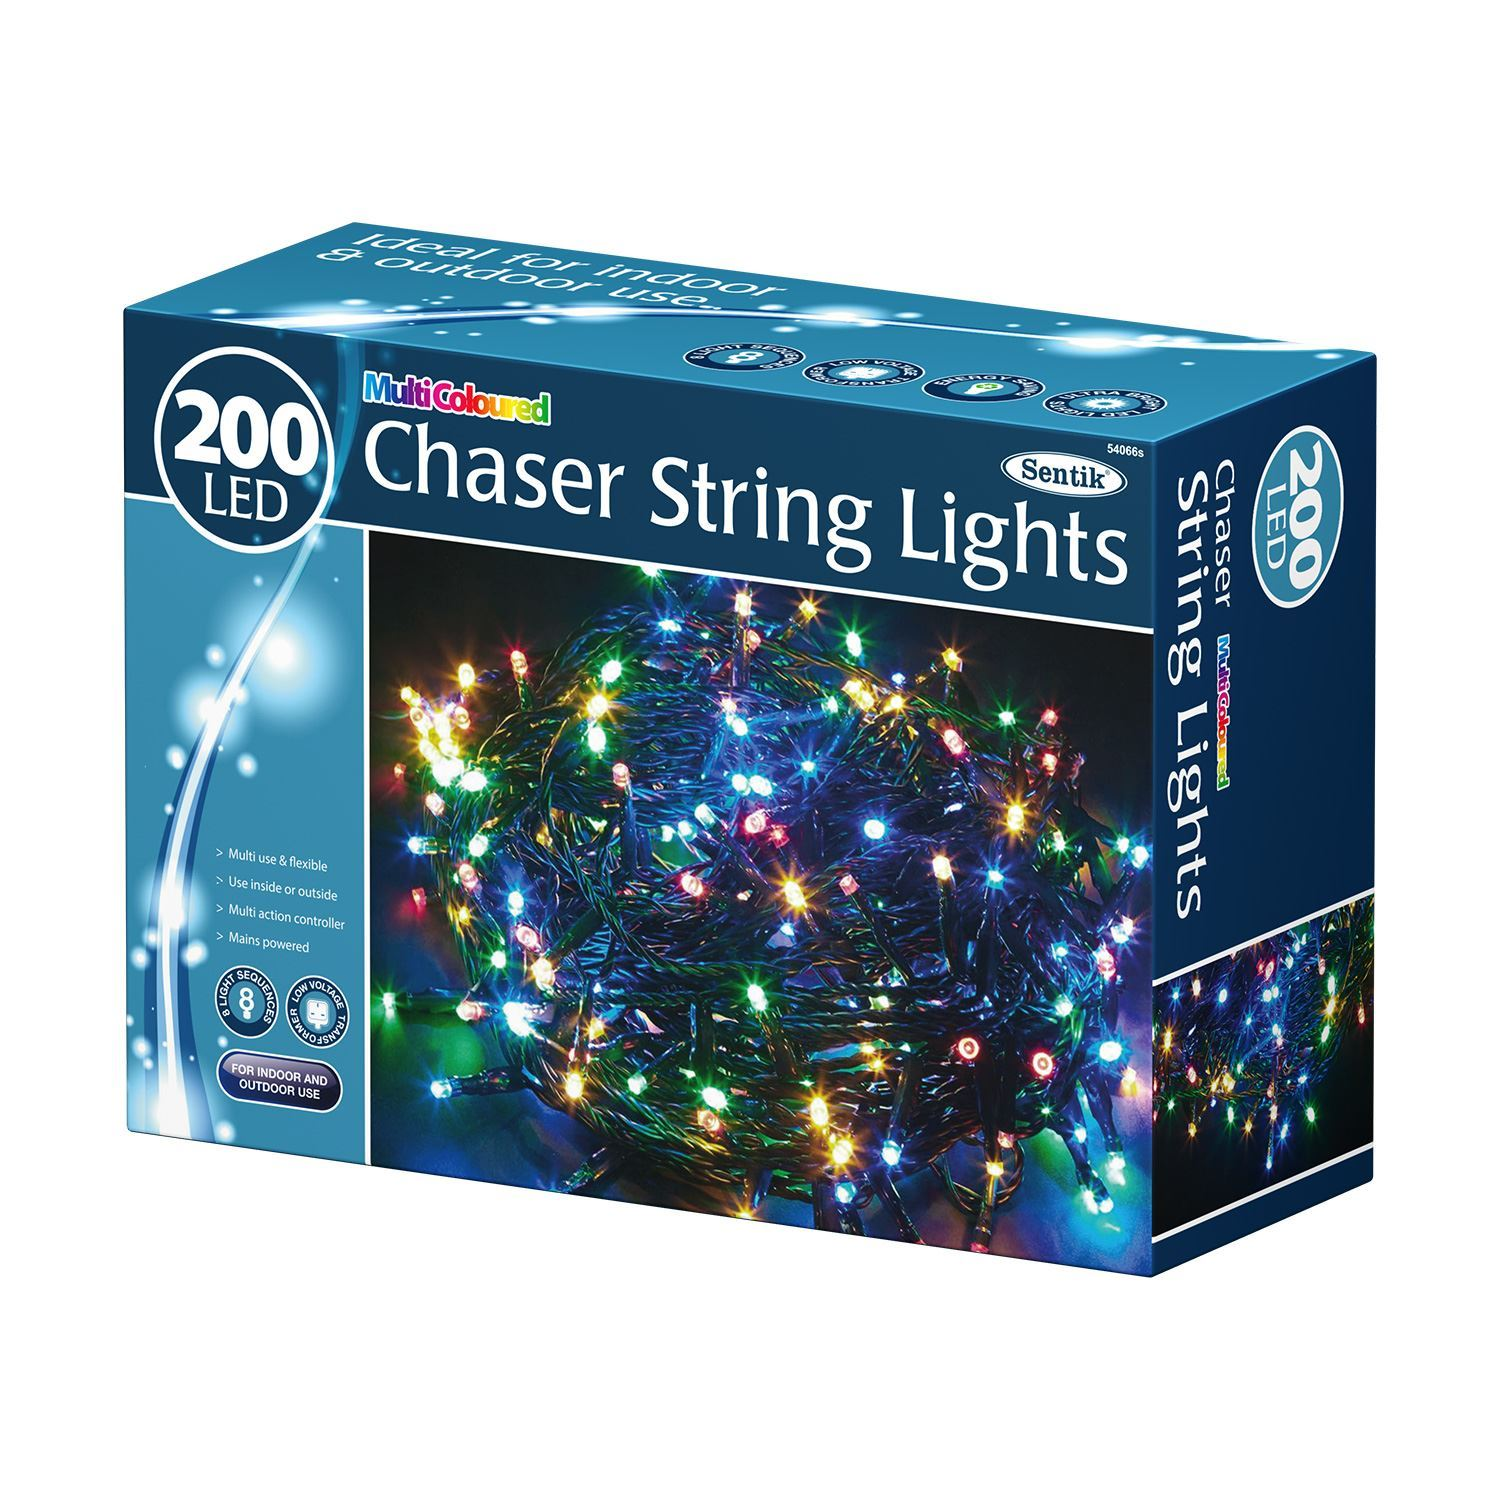 100 200 400 led chaser string fairy lights - Chaser Christmas Lights